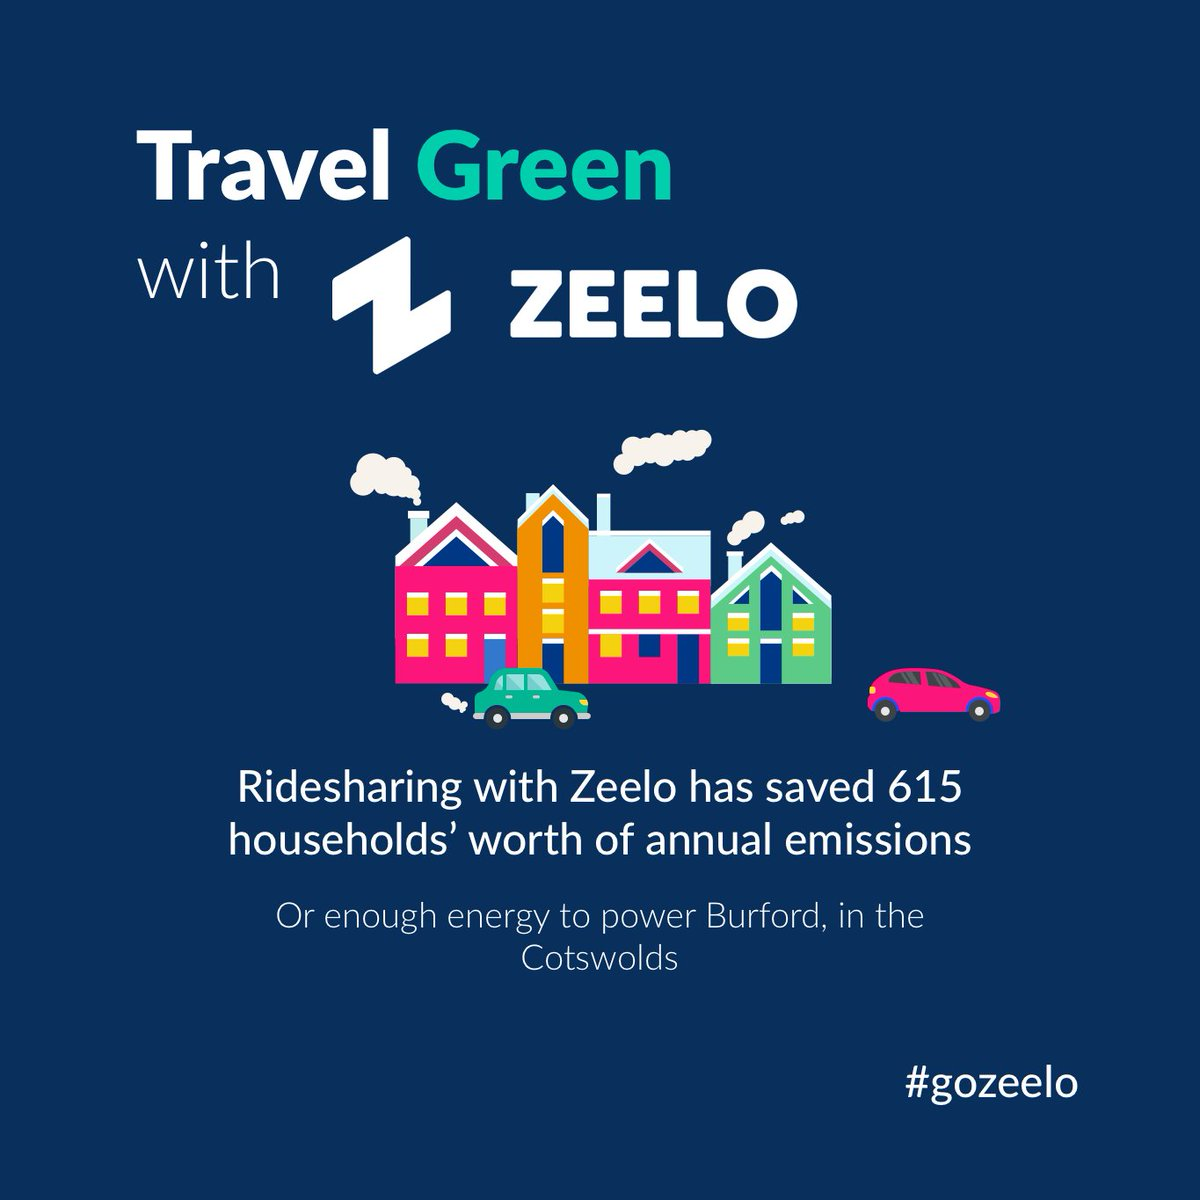 Saving enough energy to power an entire town! Join us now and switch to a greener commute